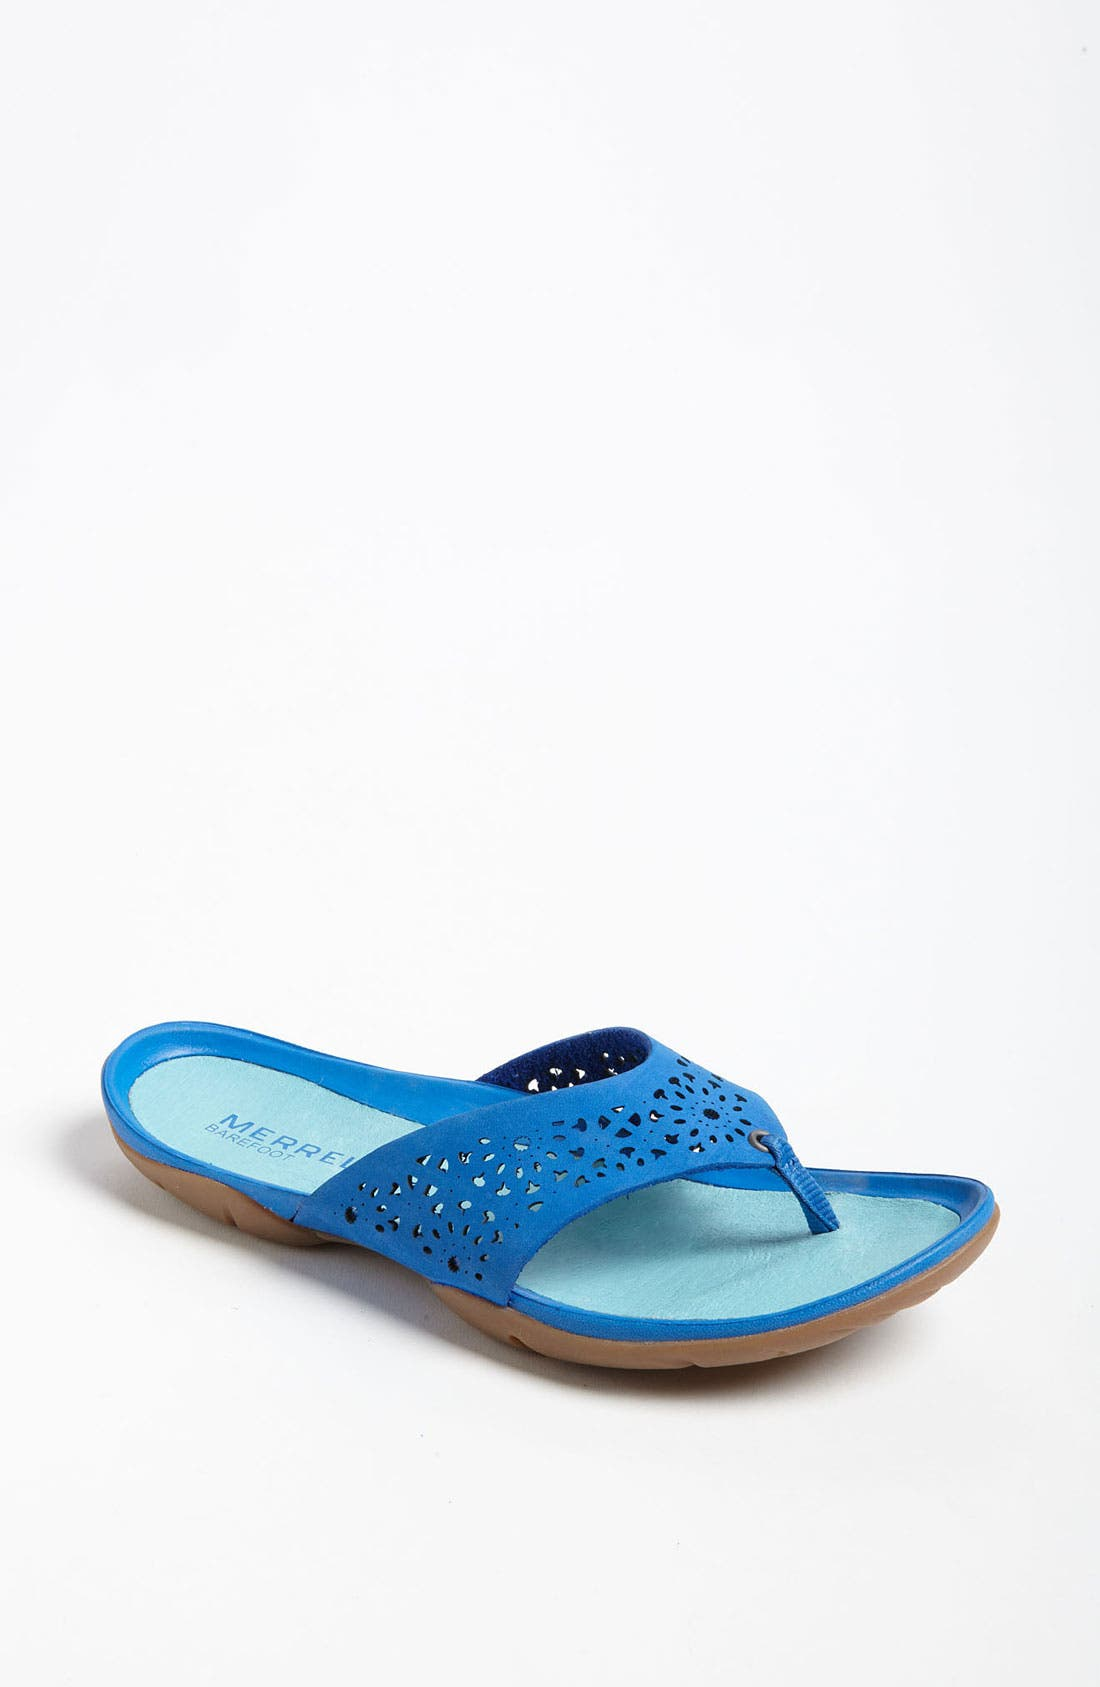 Alternate Image 1 Selected - Merrell 'Cherish Wrap' Sandal